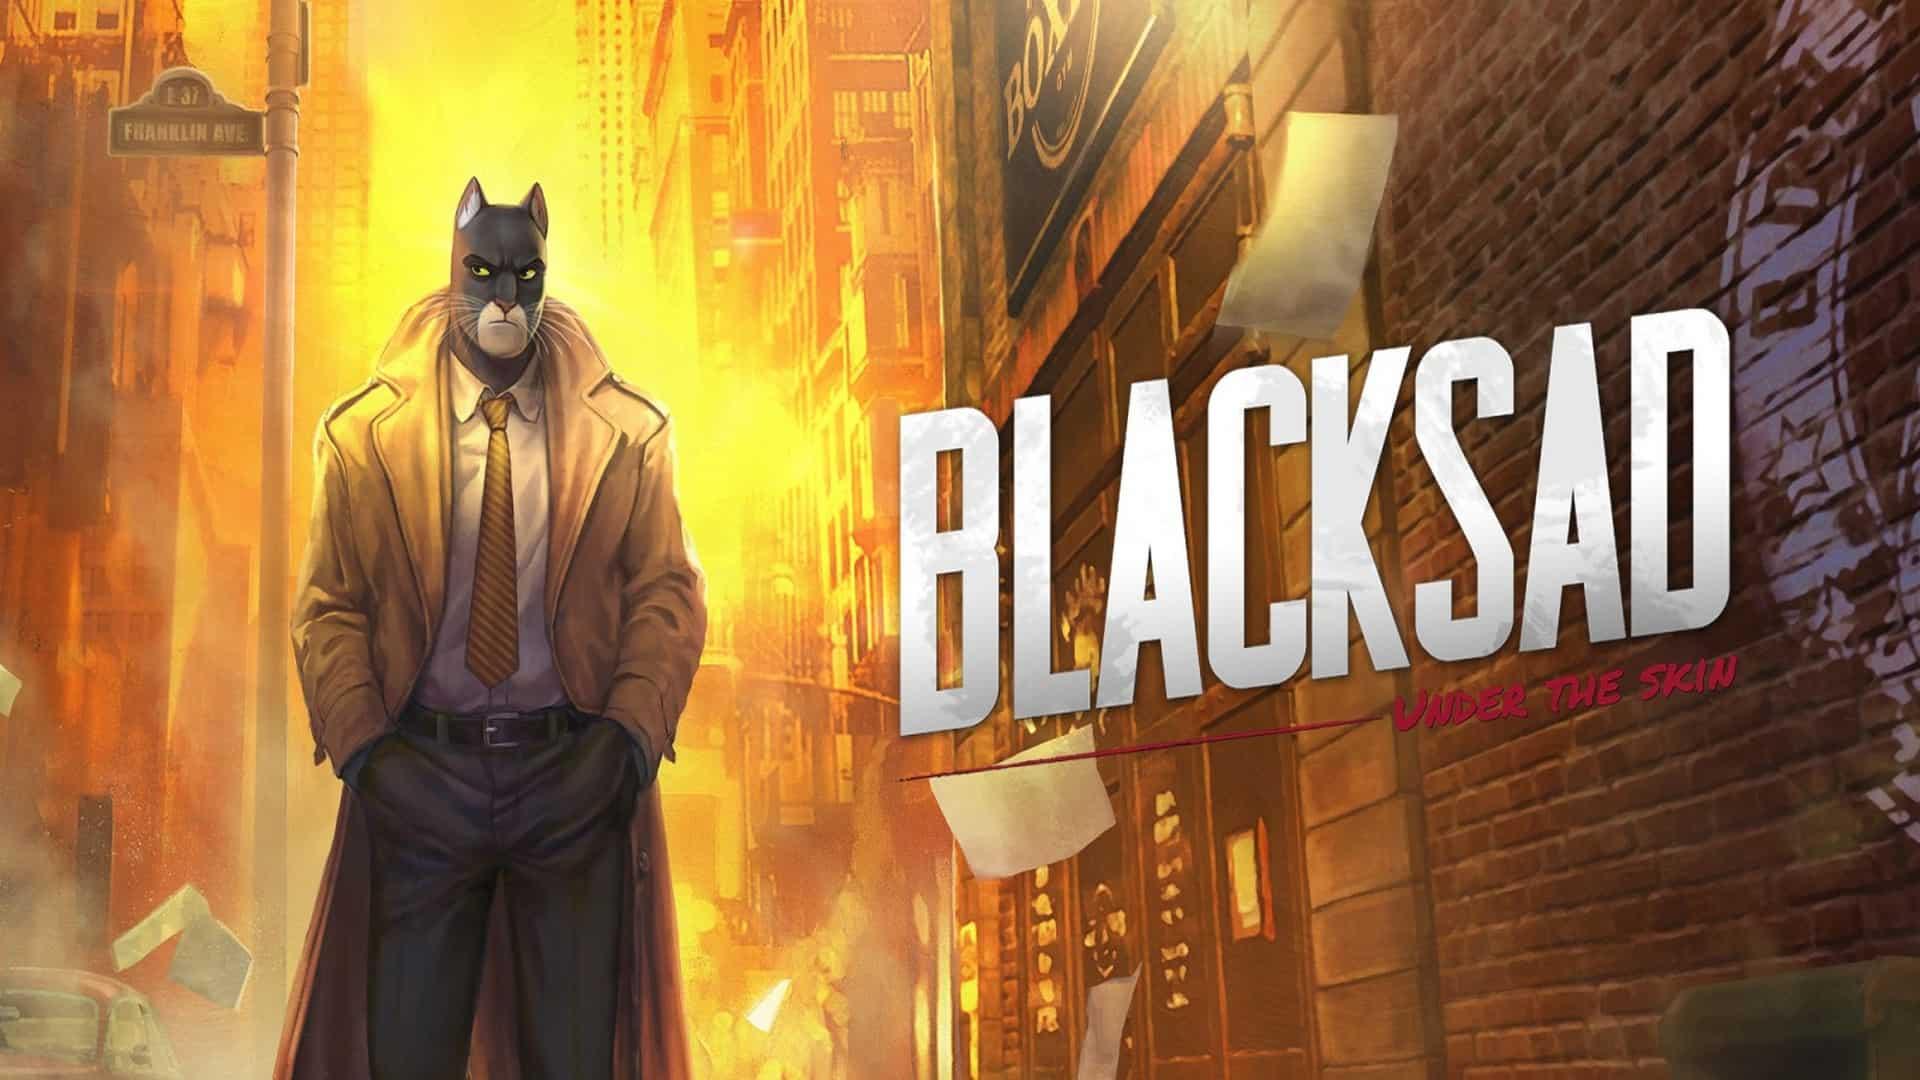 Blacksad Is Starting His Investigation Today